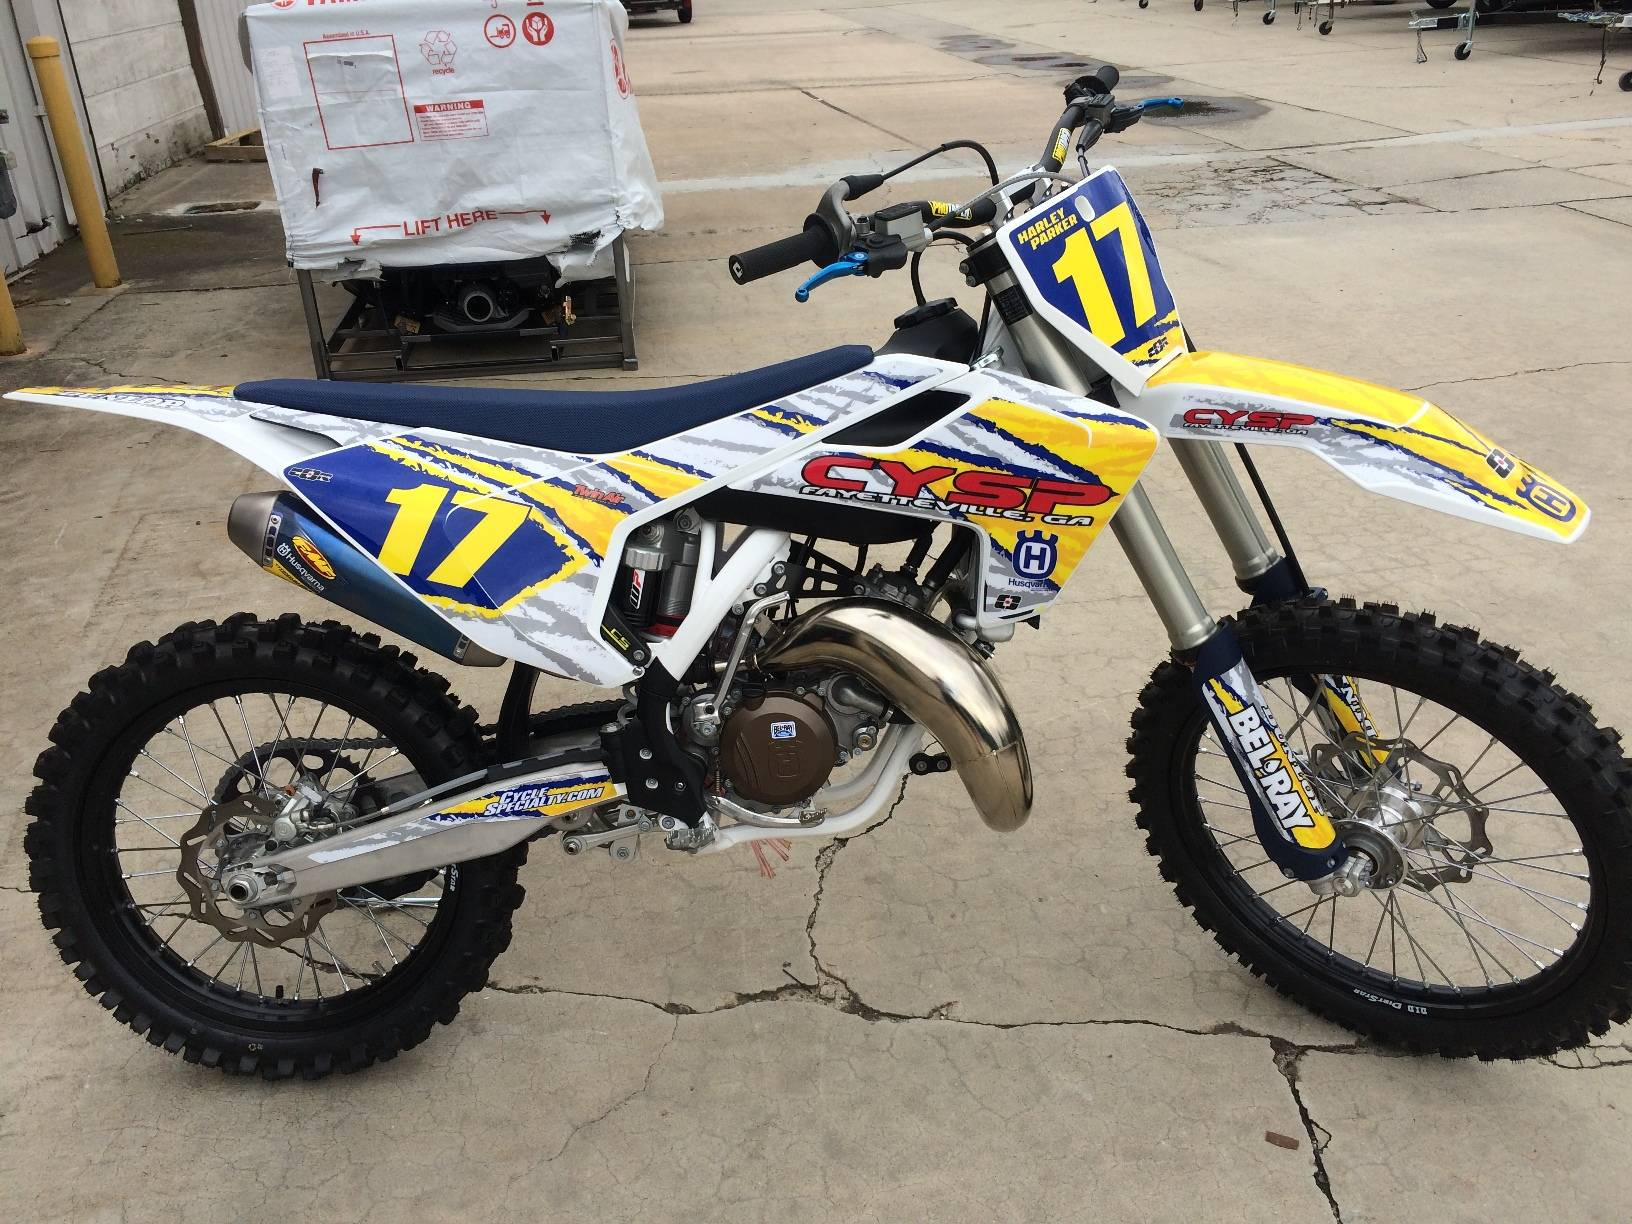 2017 Husqvarna TC 125 for sale 6655